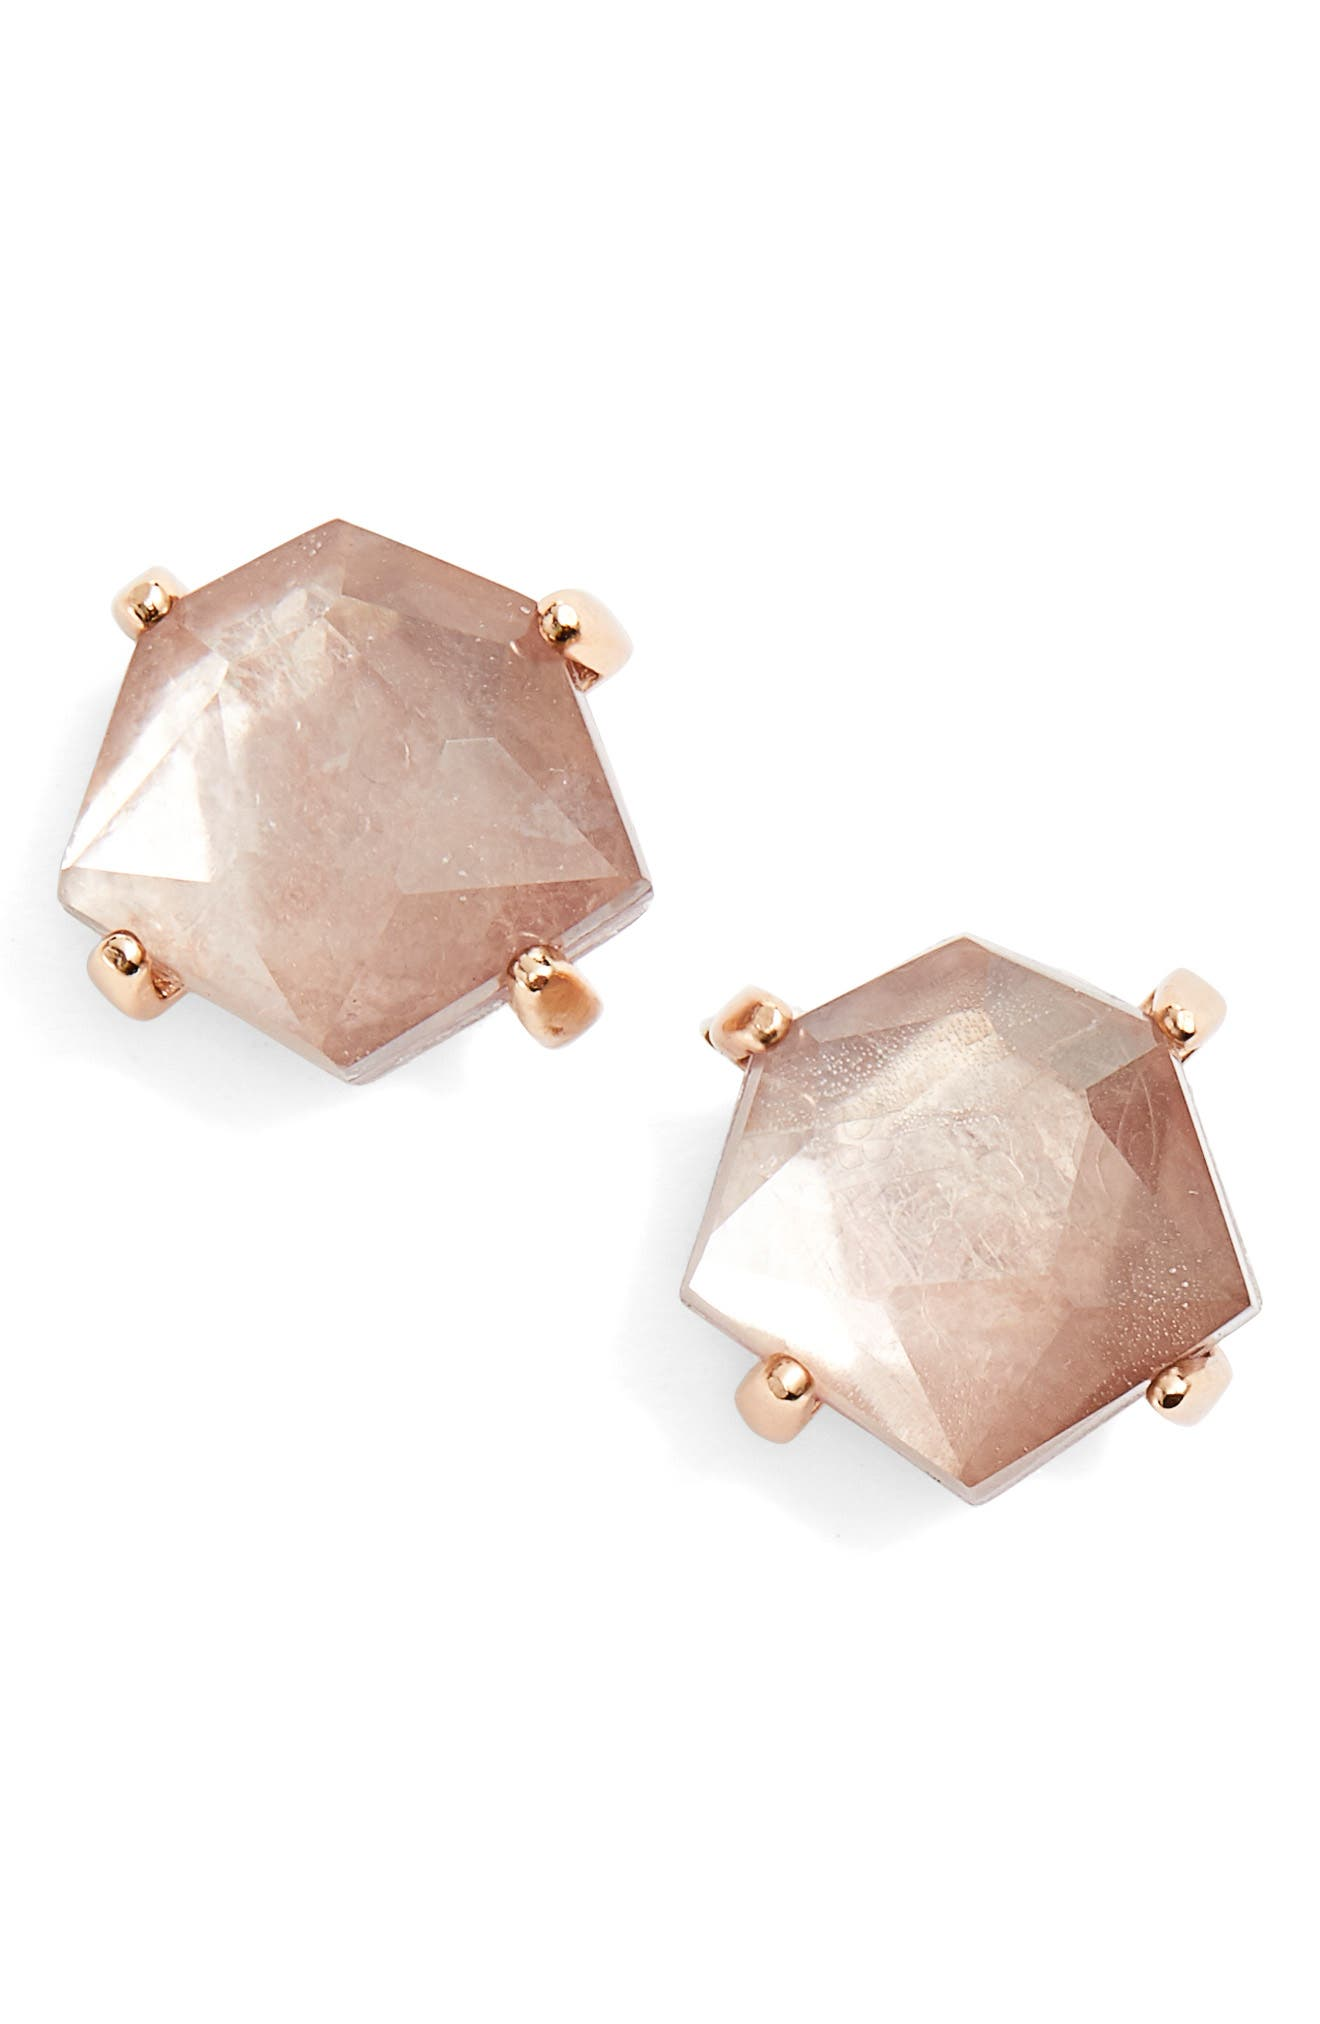 Ellms Stud Earrings,                             Main thumbnail 1, color,                             200